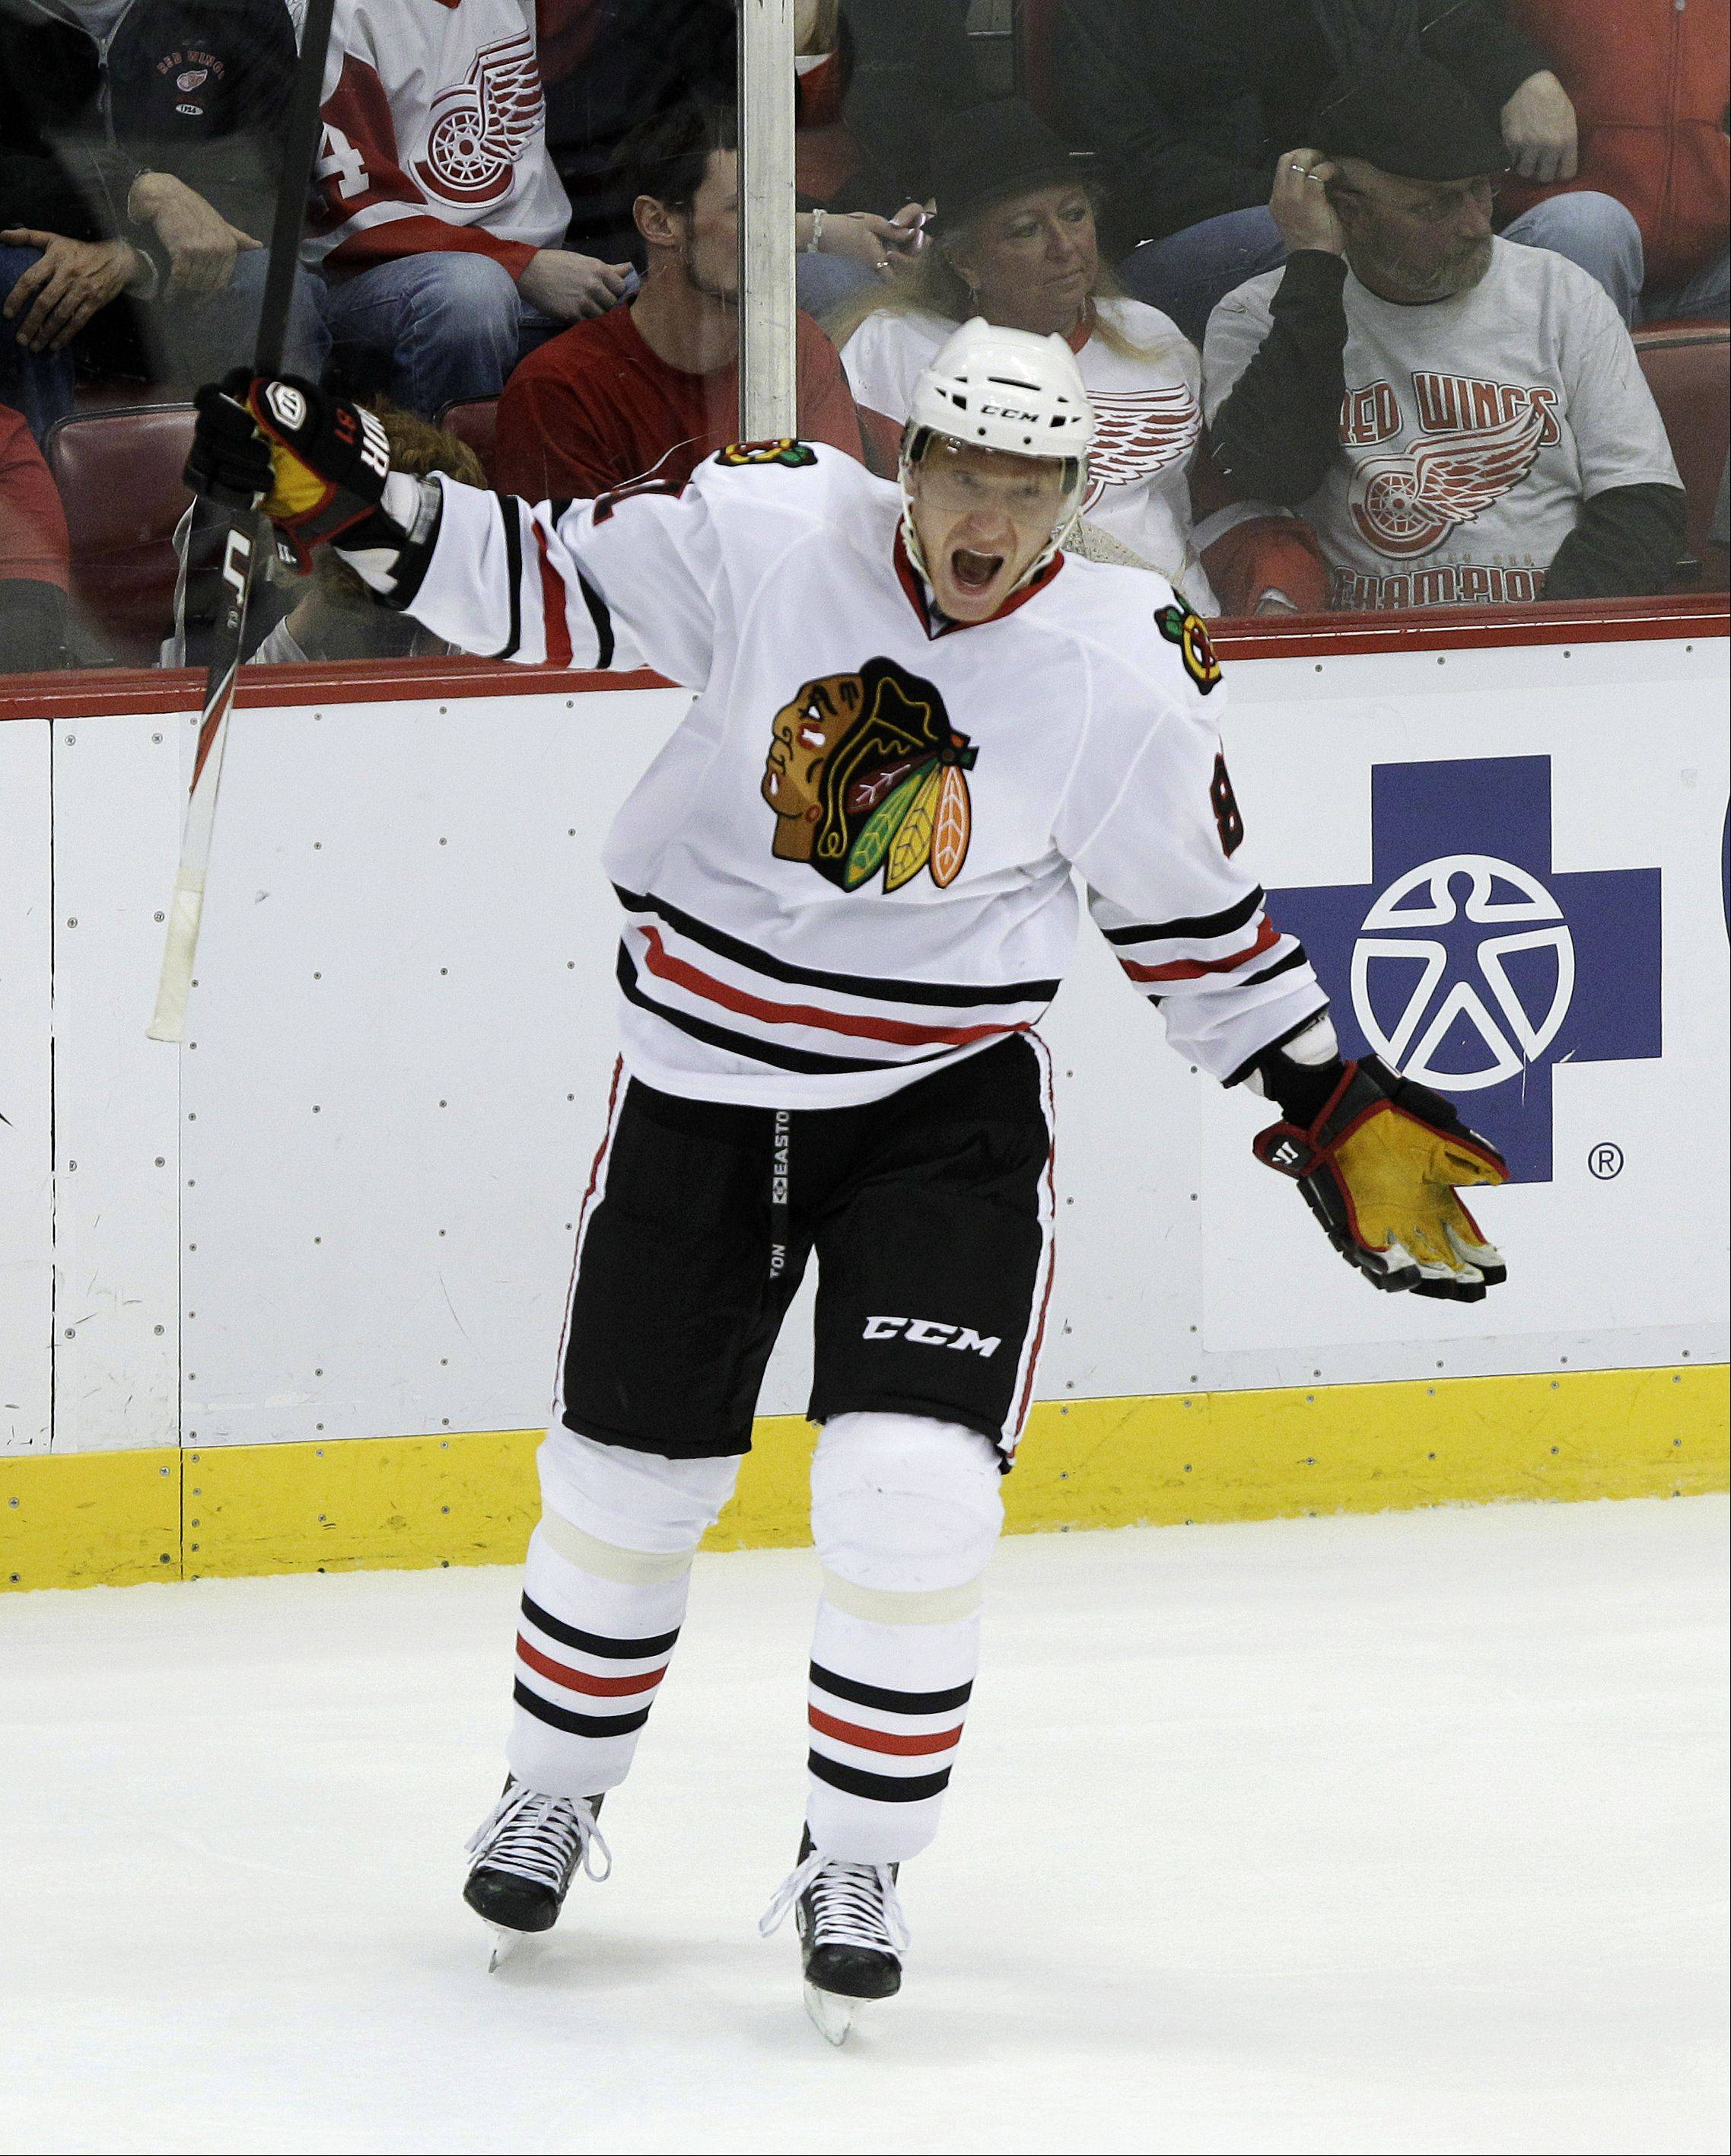 Marian Hossa is a consummate professional who gives his all on every shift and represents the Blackhawks and his sport with distinction, according to Bob Verdi.